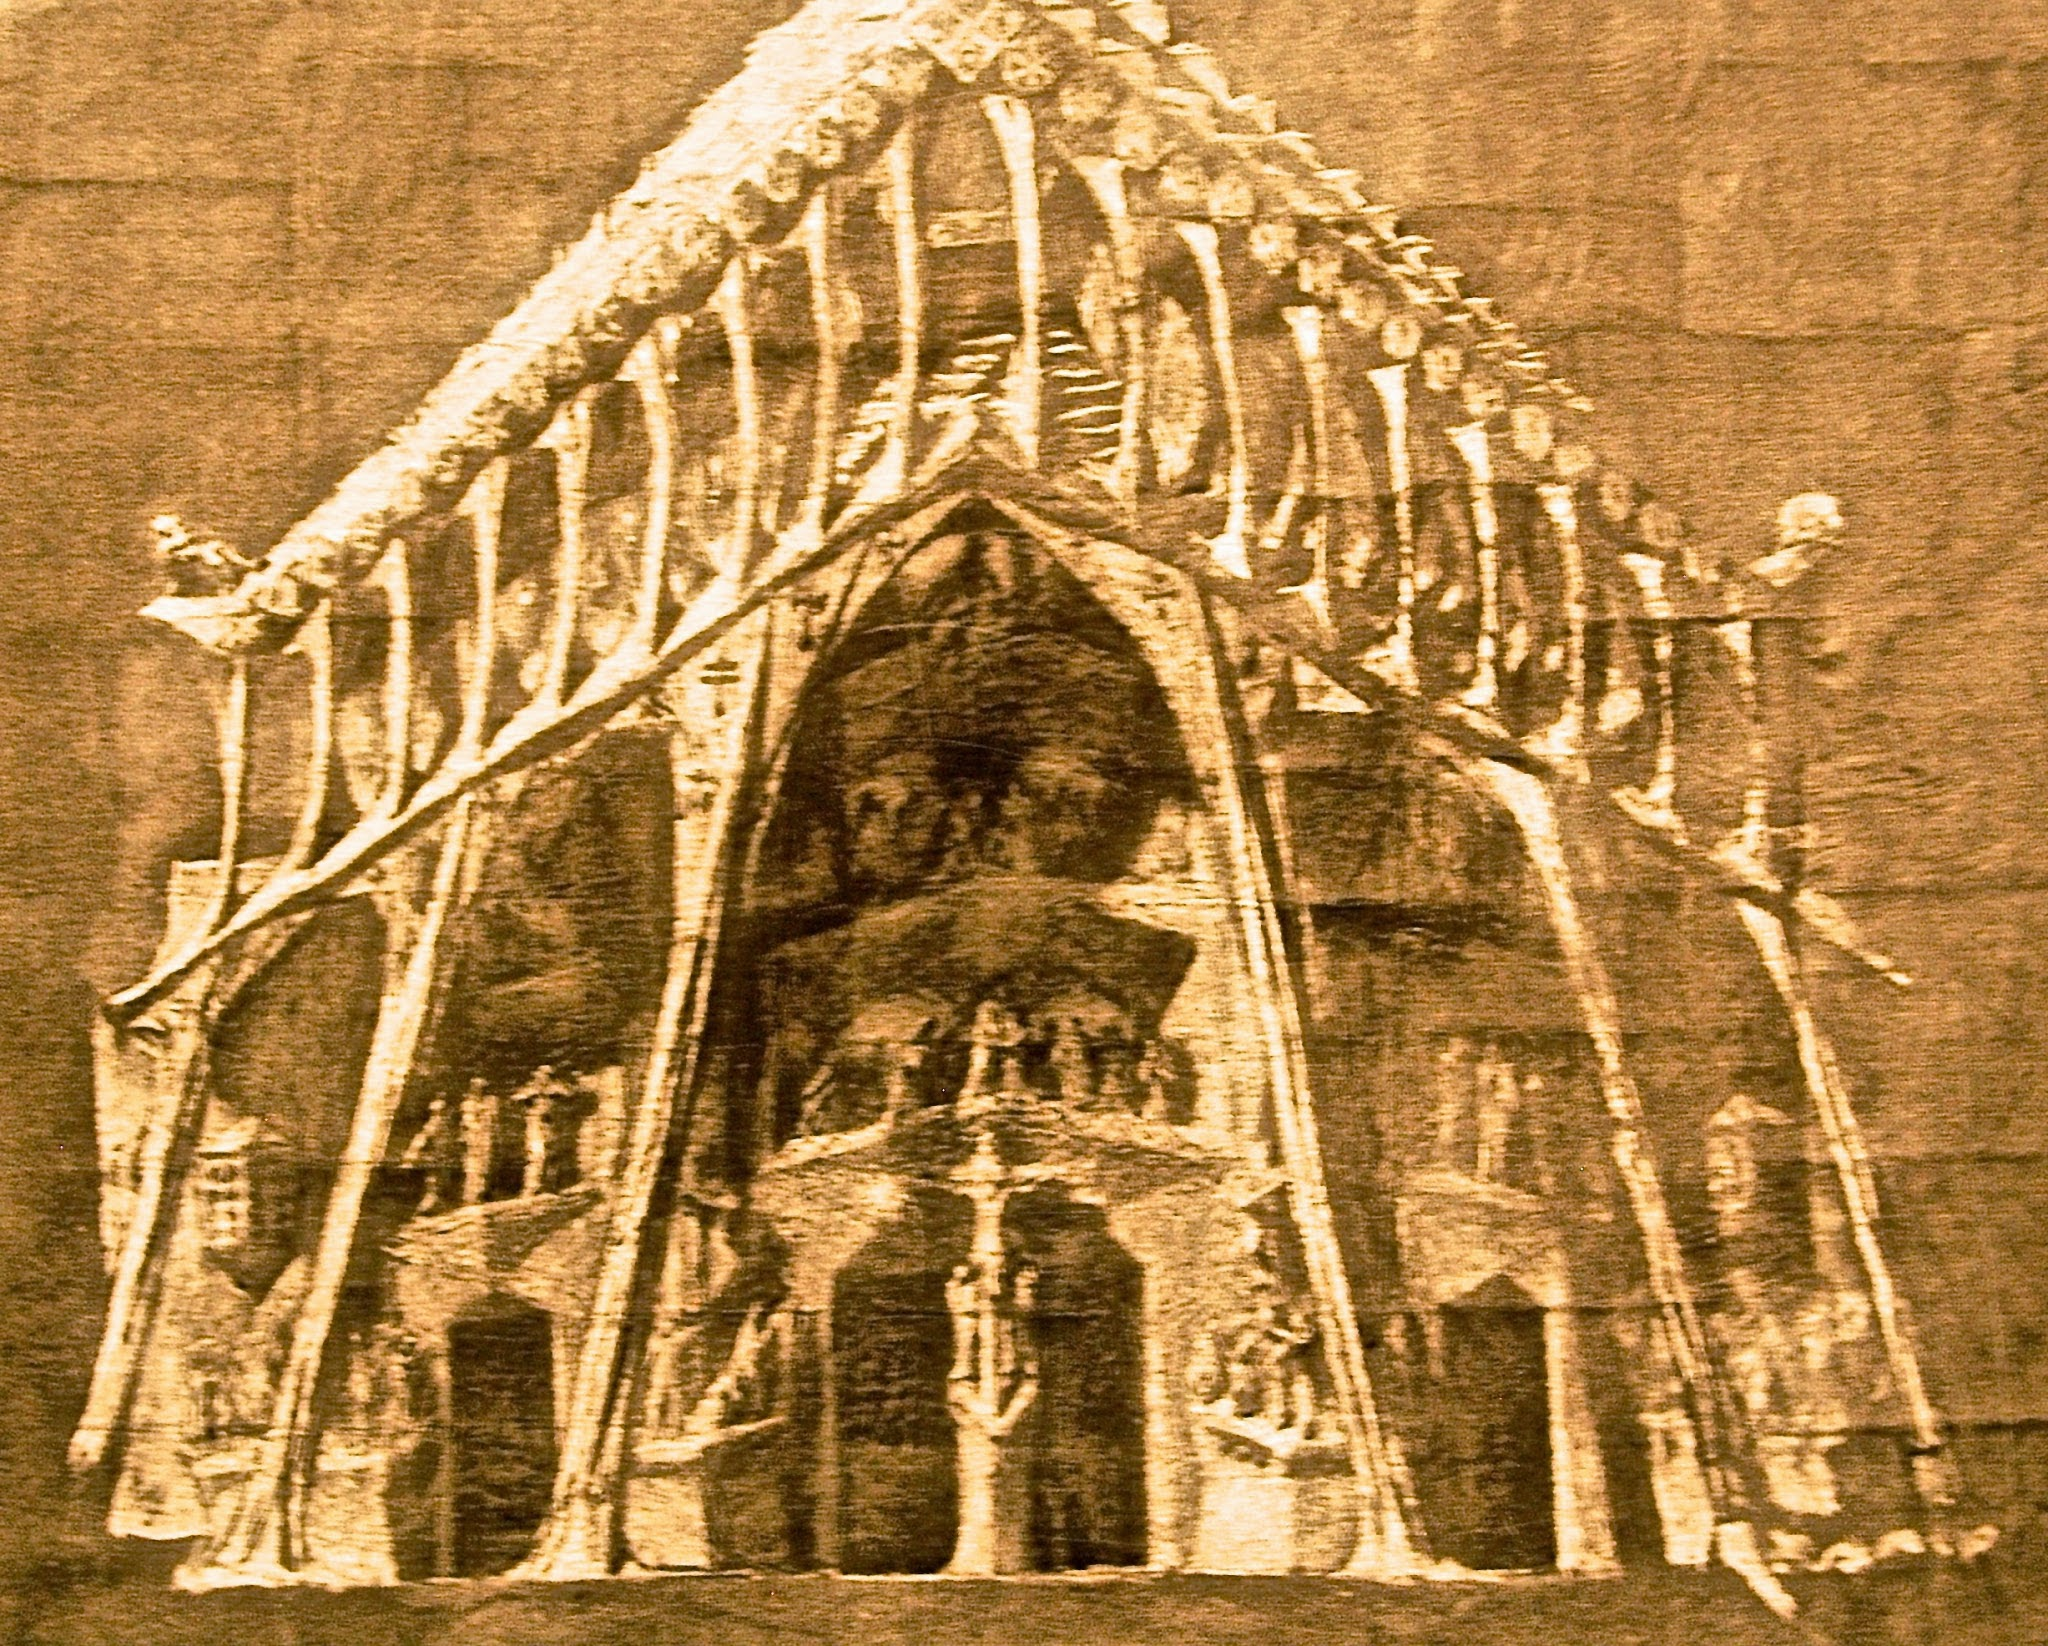 Gaudí's sketch for the Passion Facade